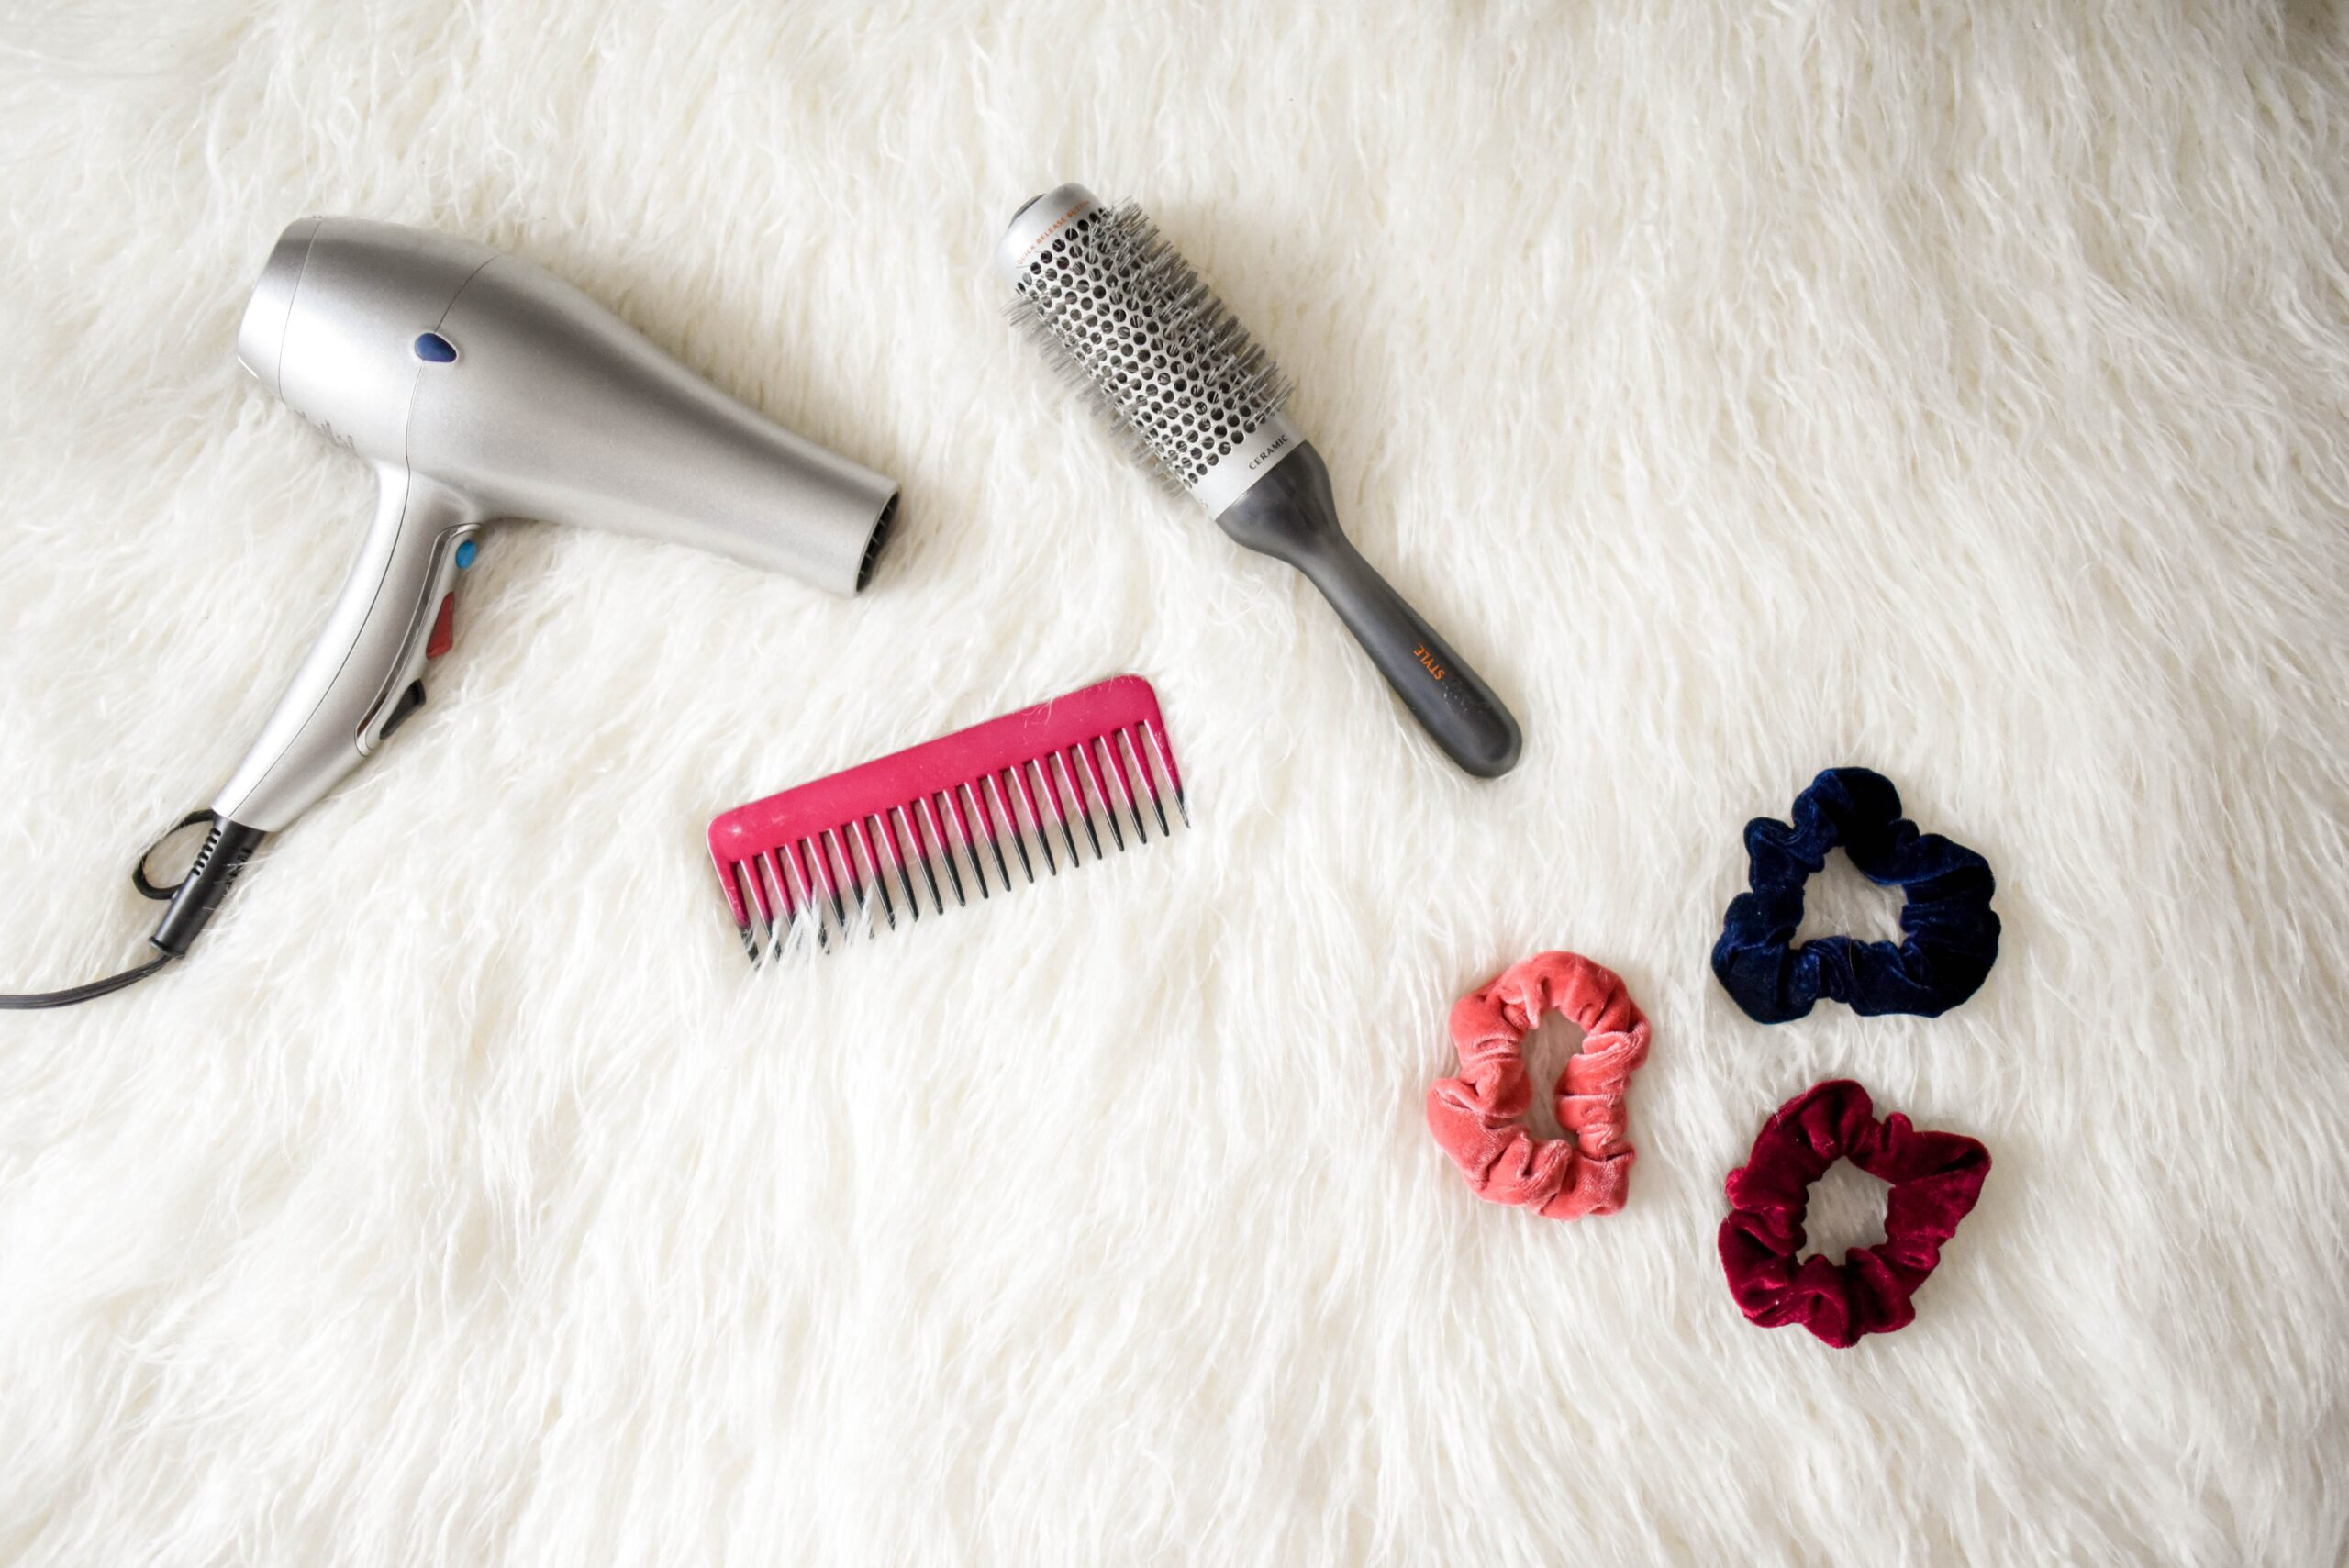 HAIR CARE MUST-HAVES